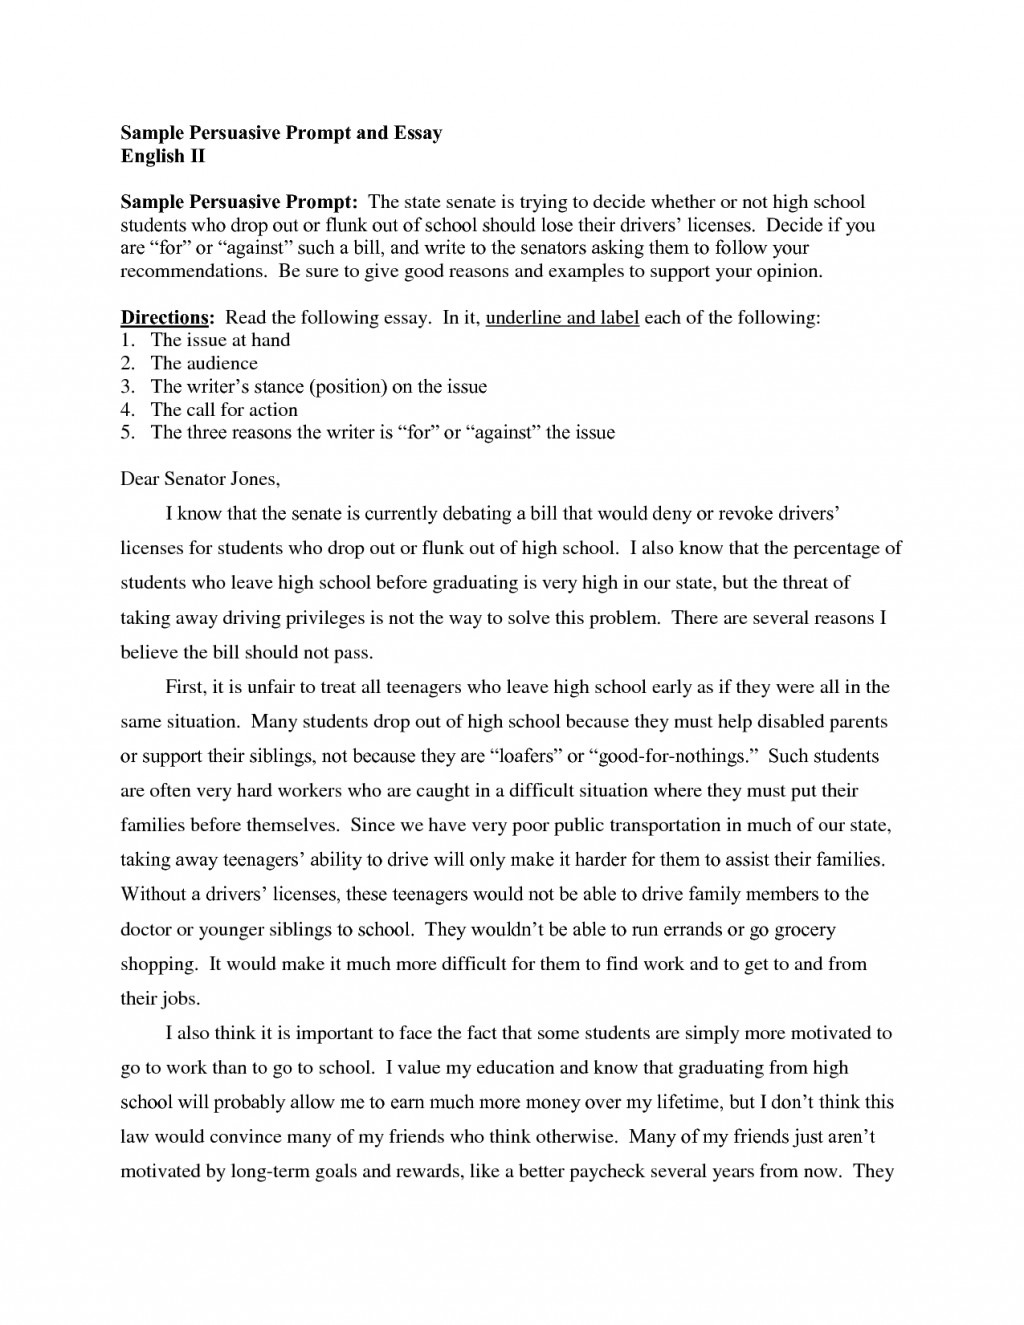 018 Research Papergh School Essays Persuasive Essay Sample About Graduation Education Day Sports Lifeghschool Dropouts And College Police Brutality Experiences Students Memories Brave New World Marvelous High Paper Format For Senior Pdf Example Large